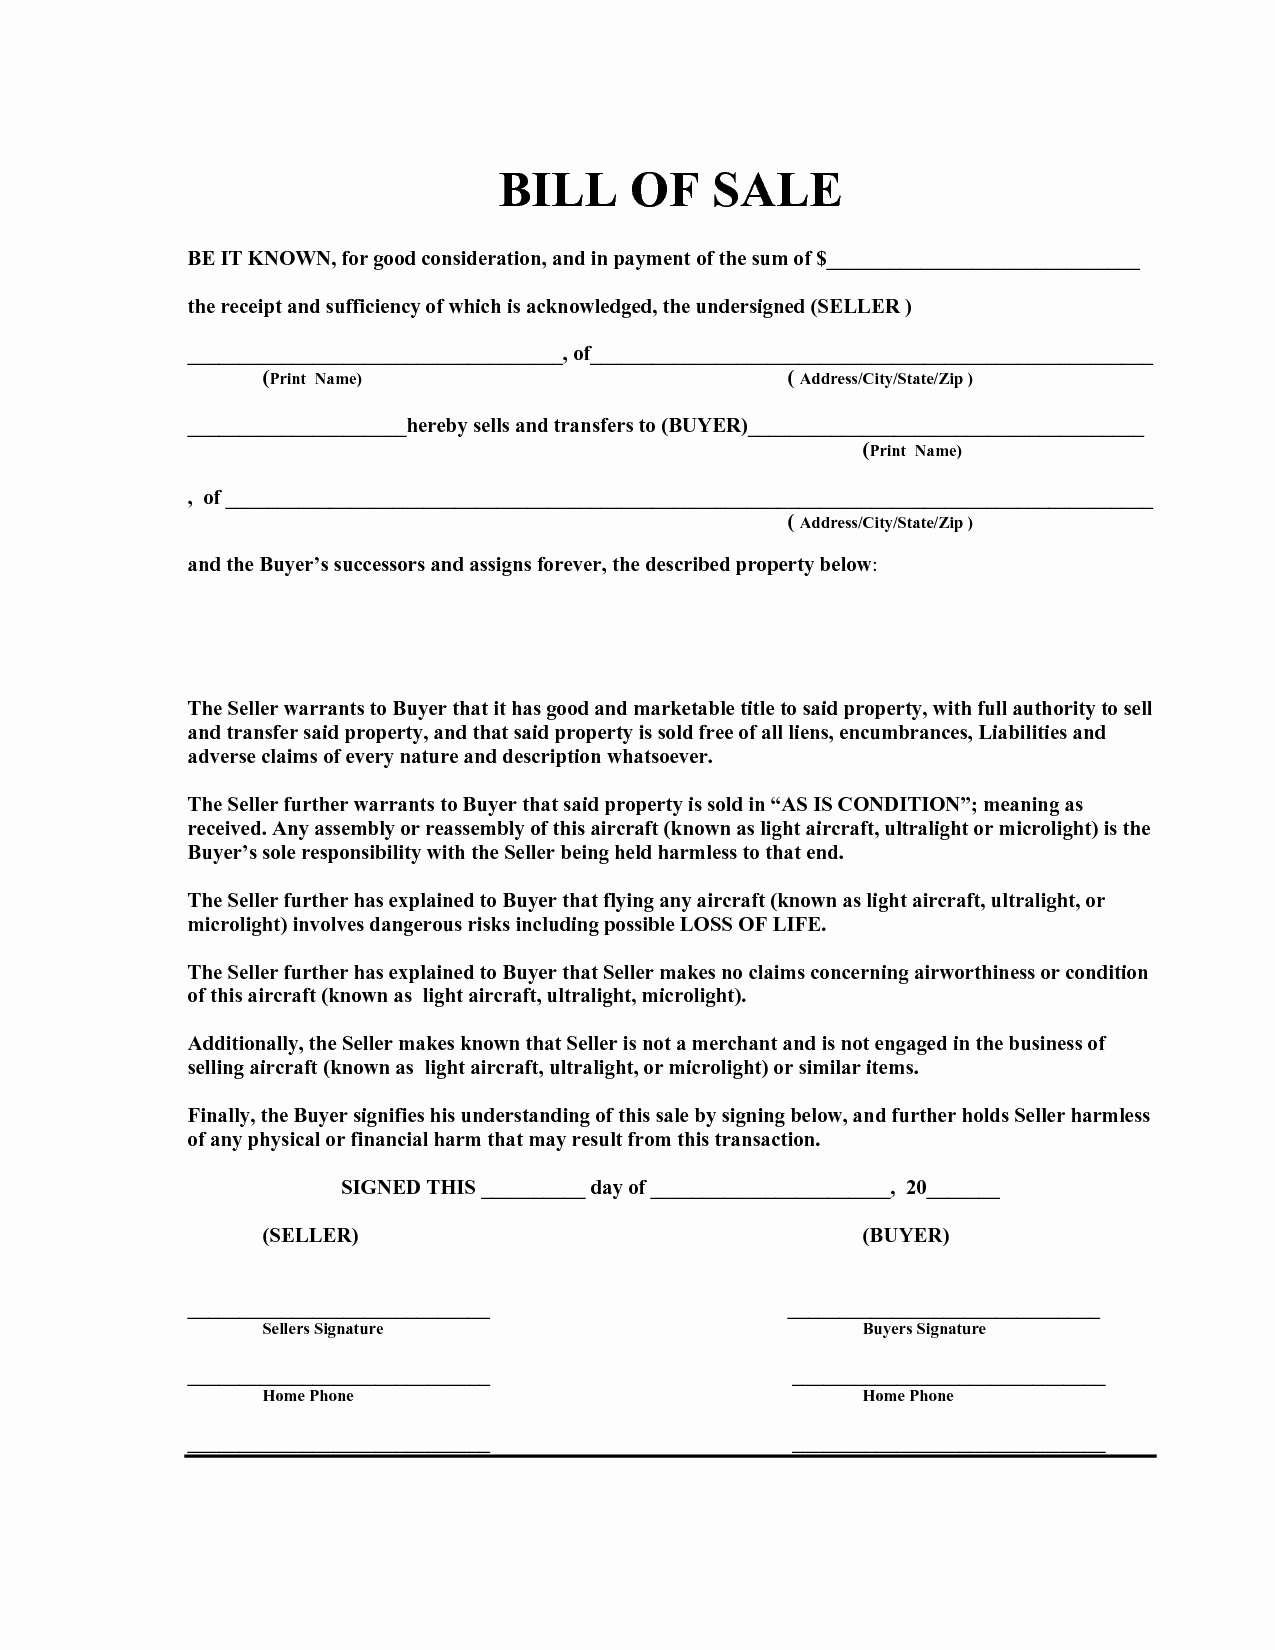 Basic Bill Of Sale Template Lovely Free Bill Of Sale Template Pdf by Marymenti as is Bill